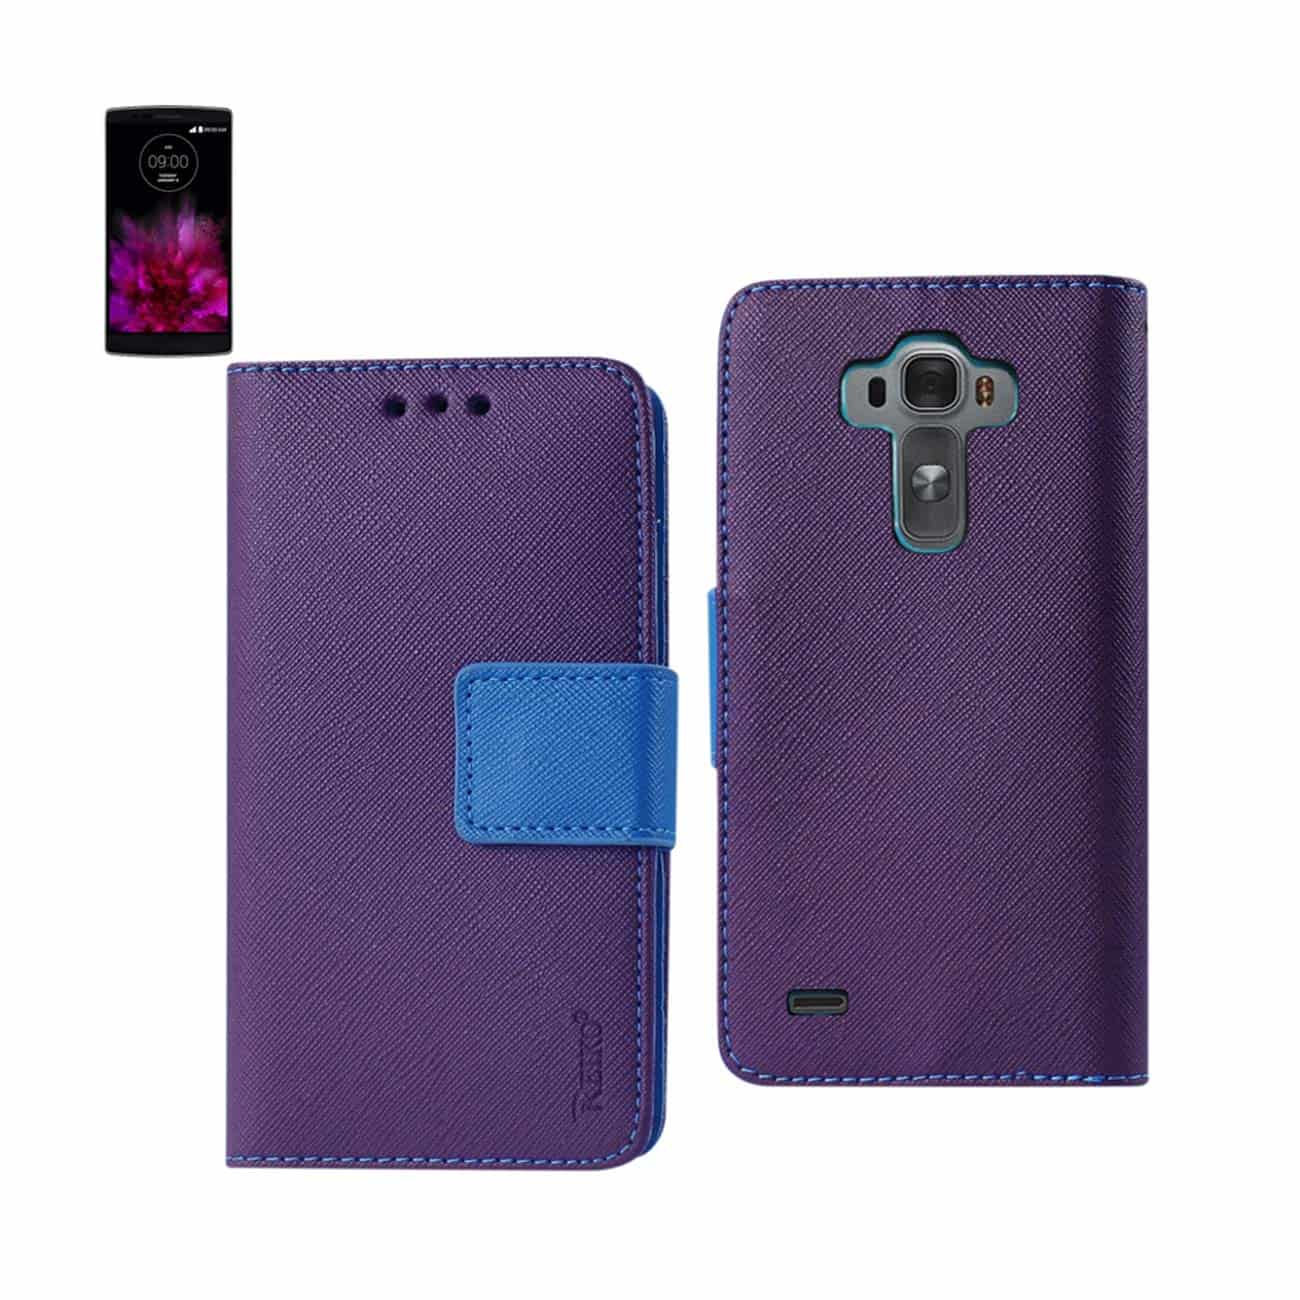 LG G FLEX 2 3-IN-1 WALLET CASE IN PURPLE